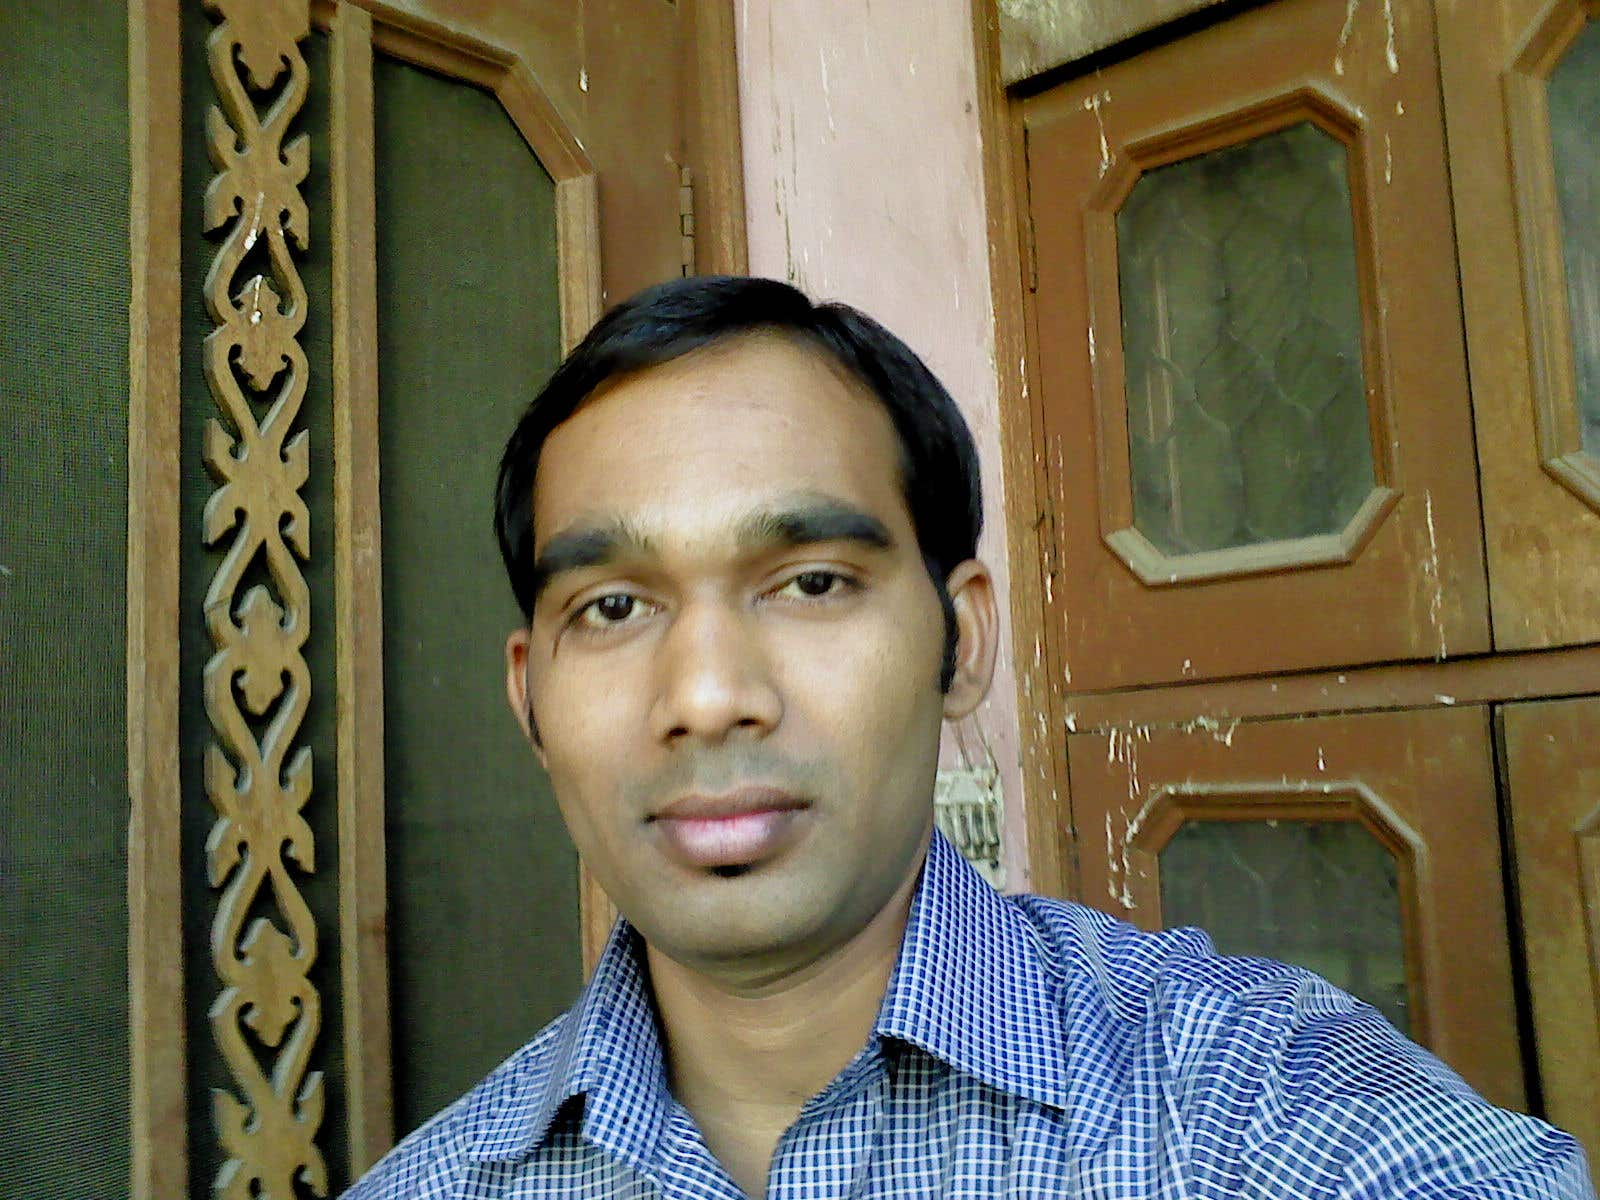 Profile image of Sanjaydolp